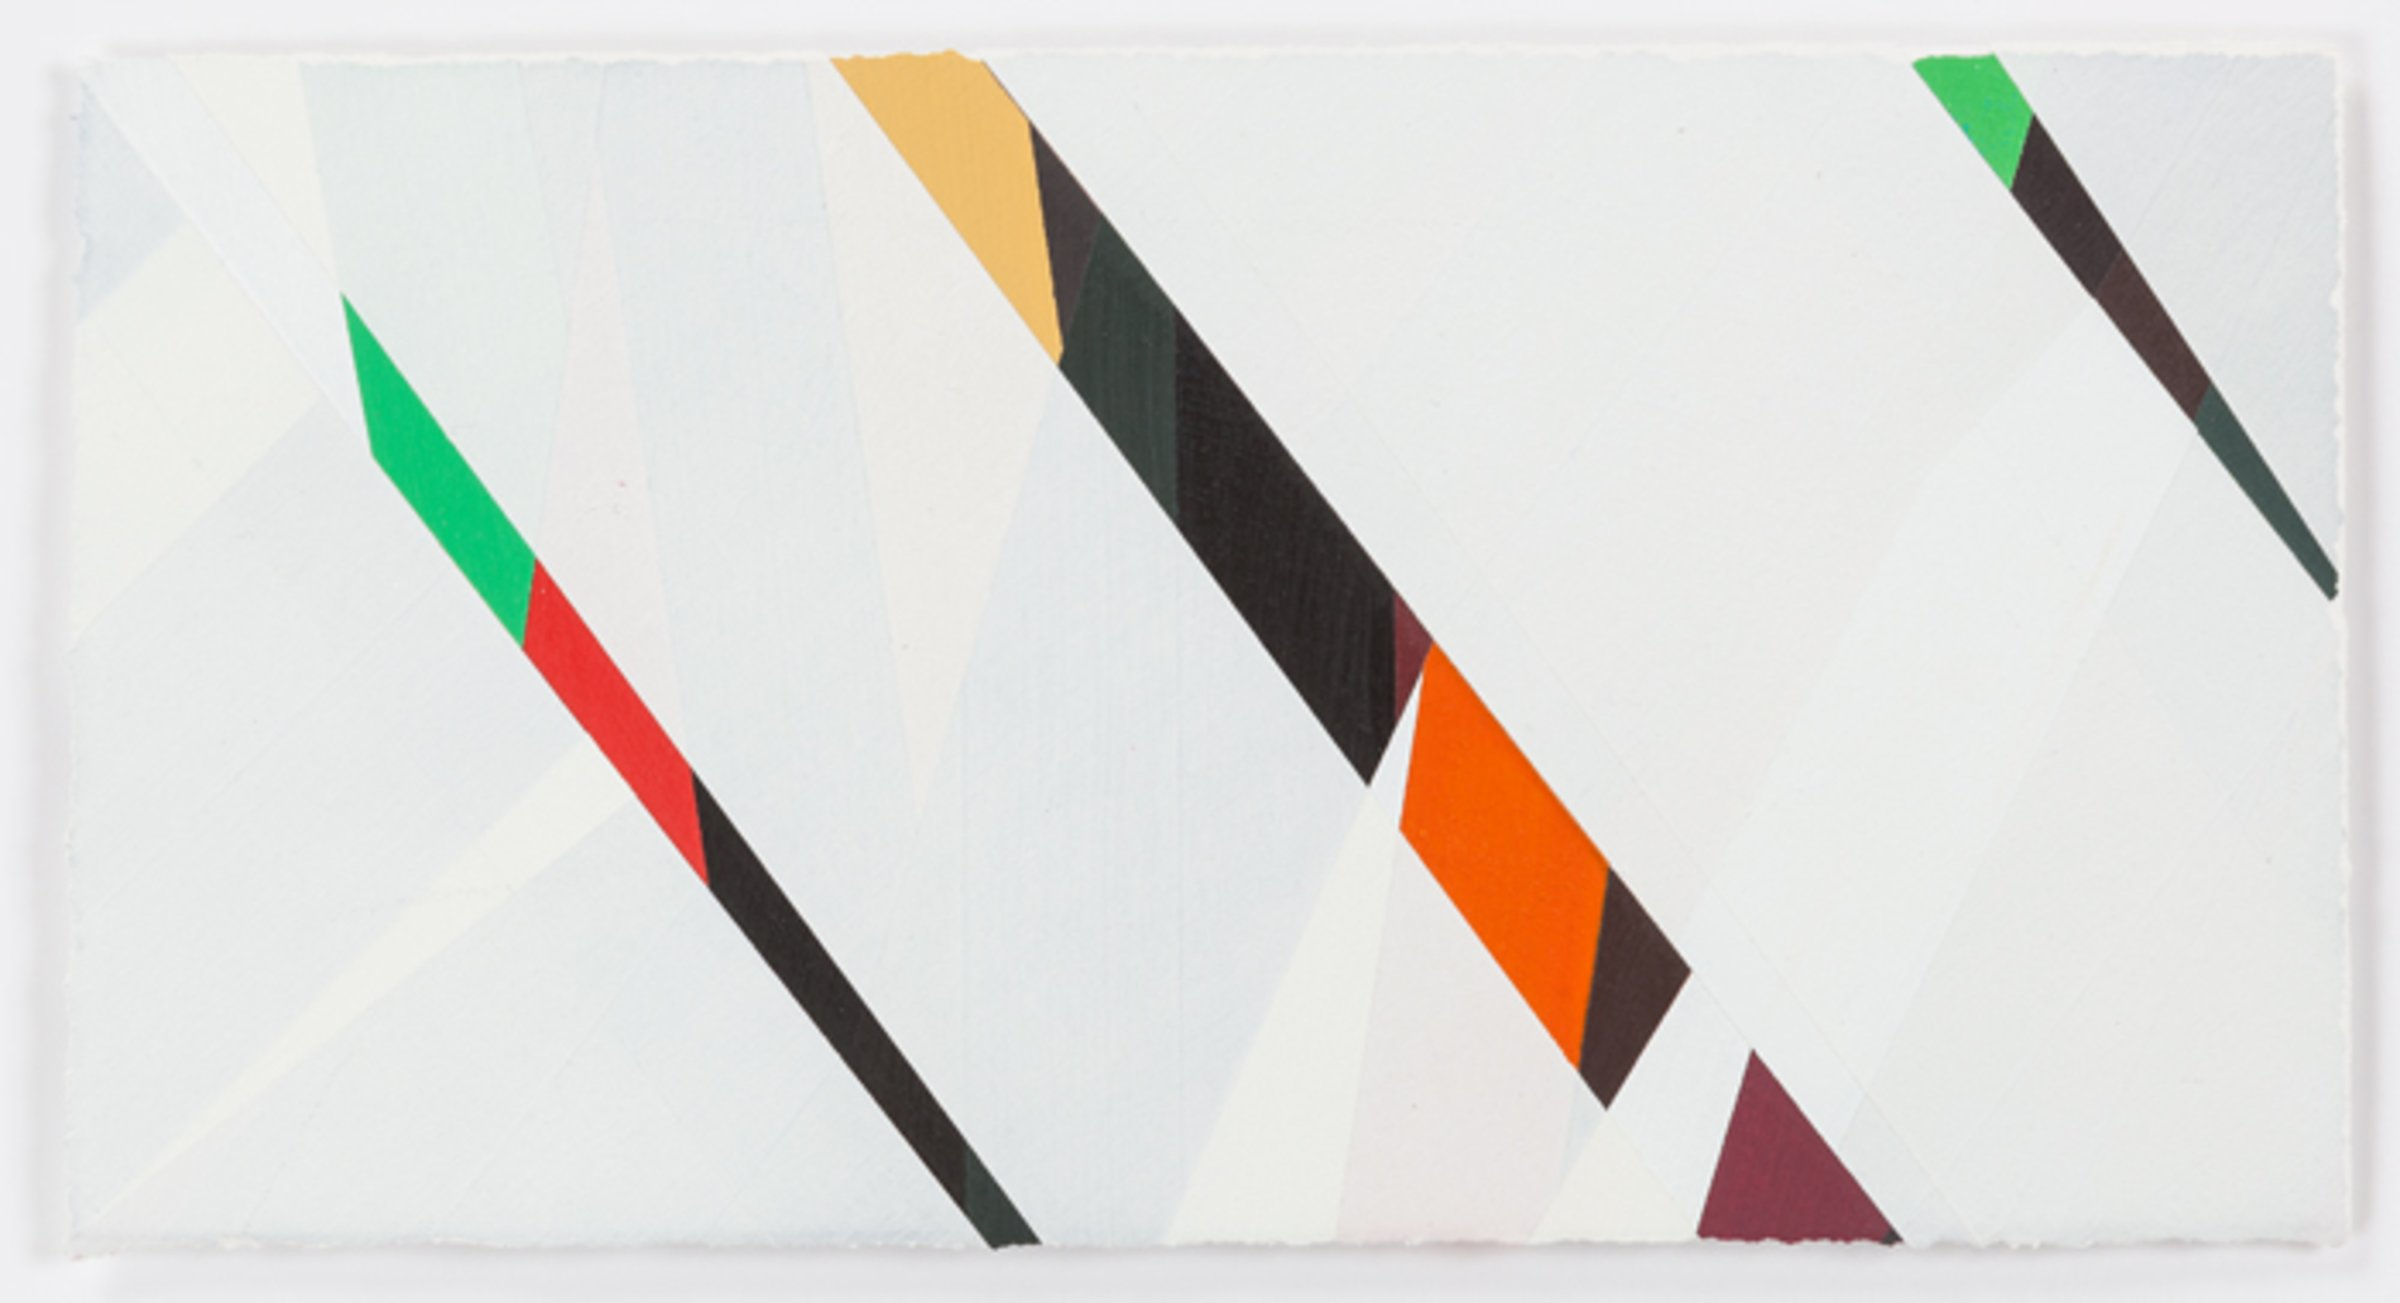 Jerry Walden, Hundred Fifty Six (Again and Again), 2014